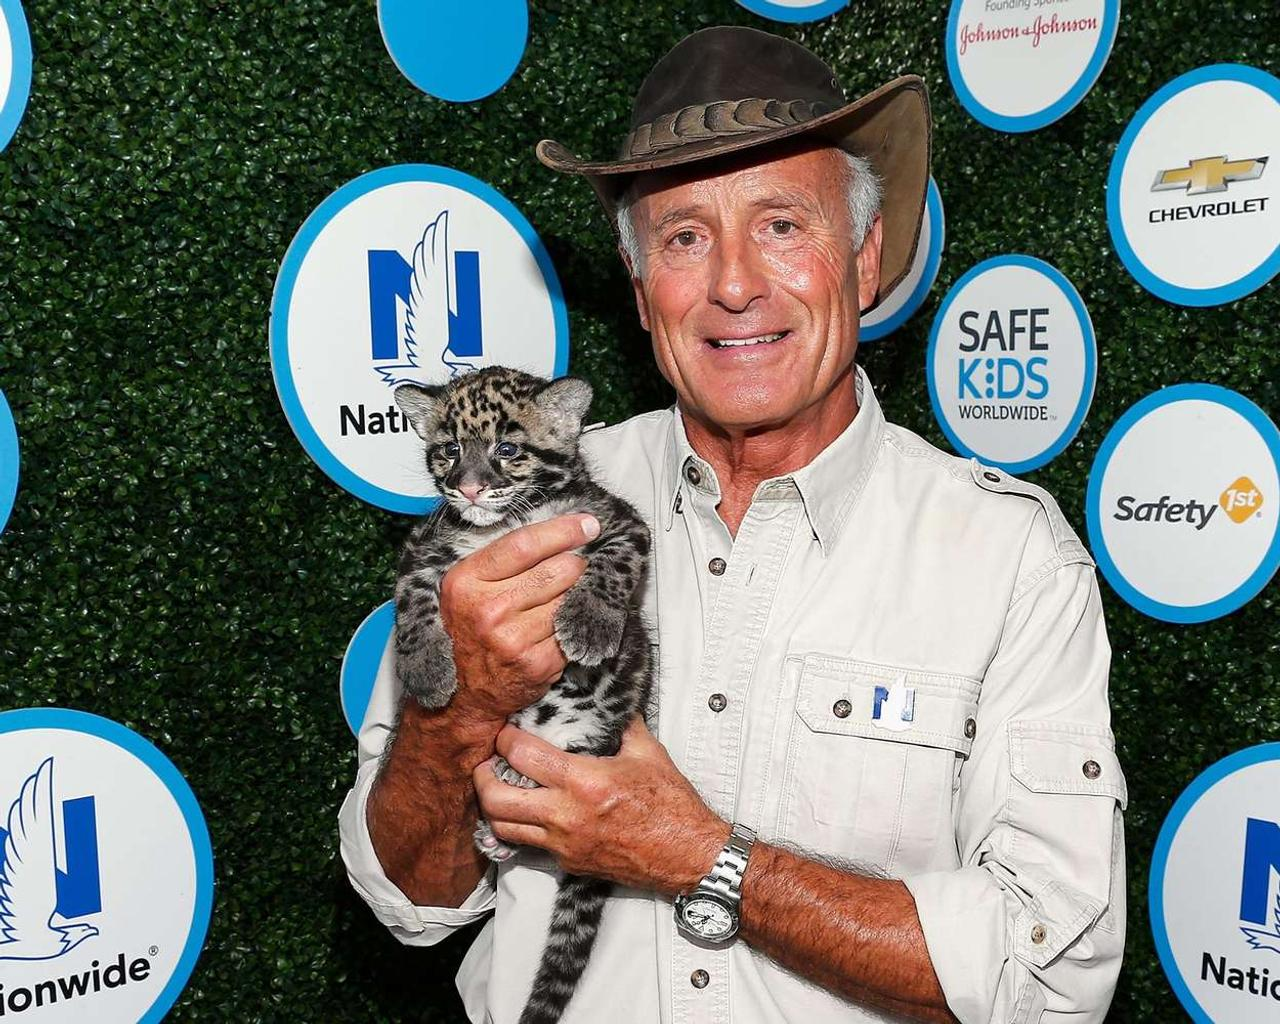 The beloved veterinarian Jack Hanna suffers from dementia, a step away from public health